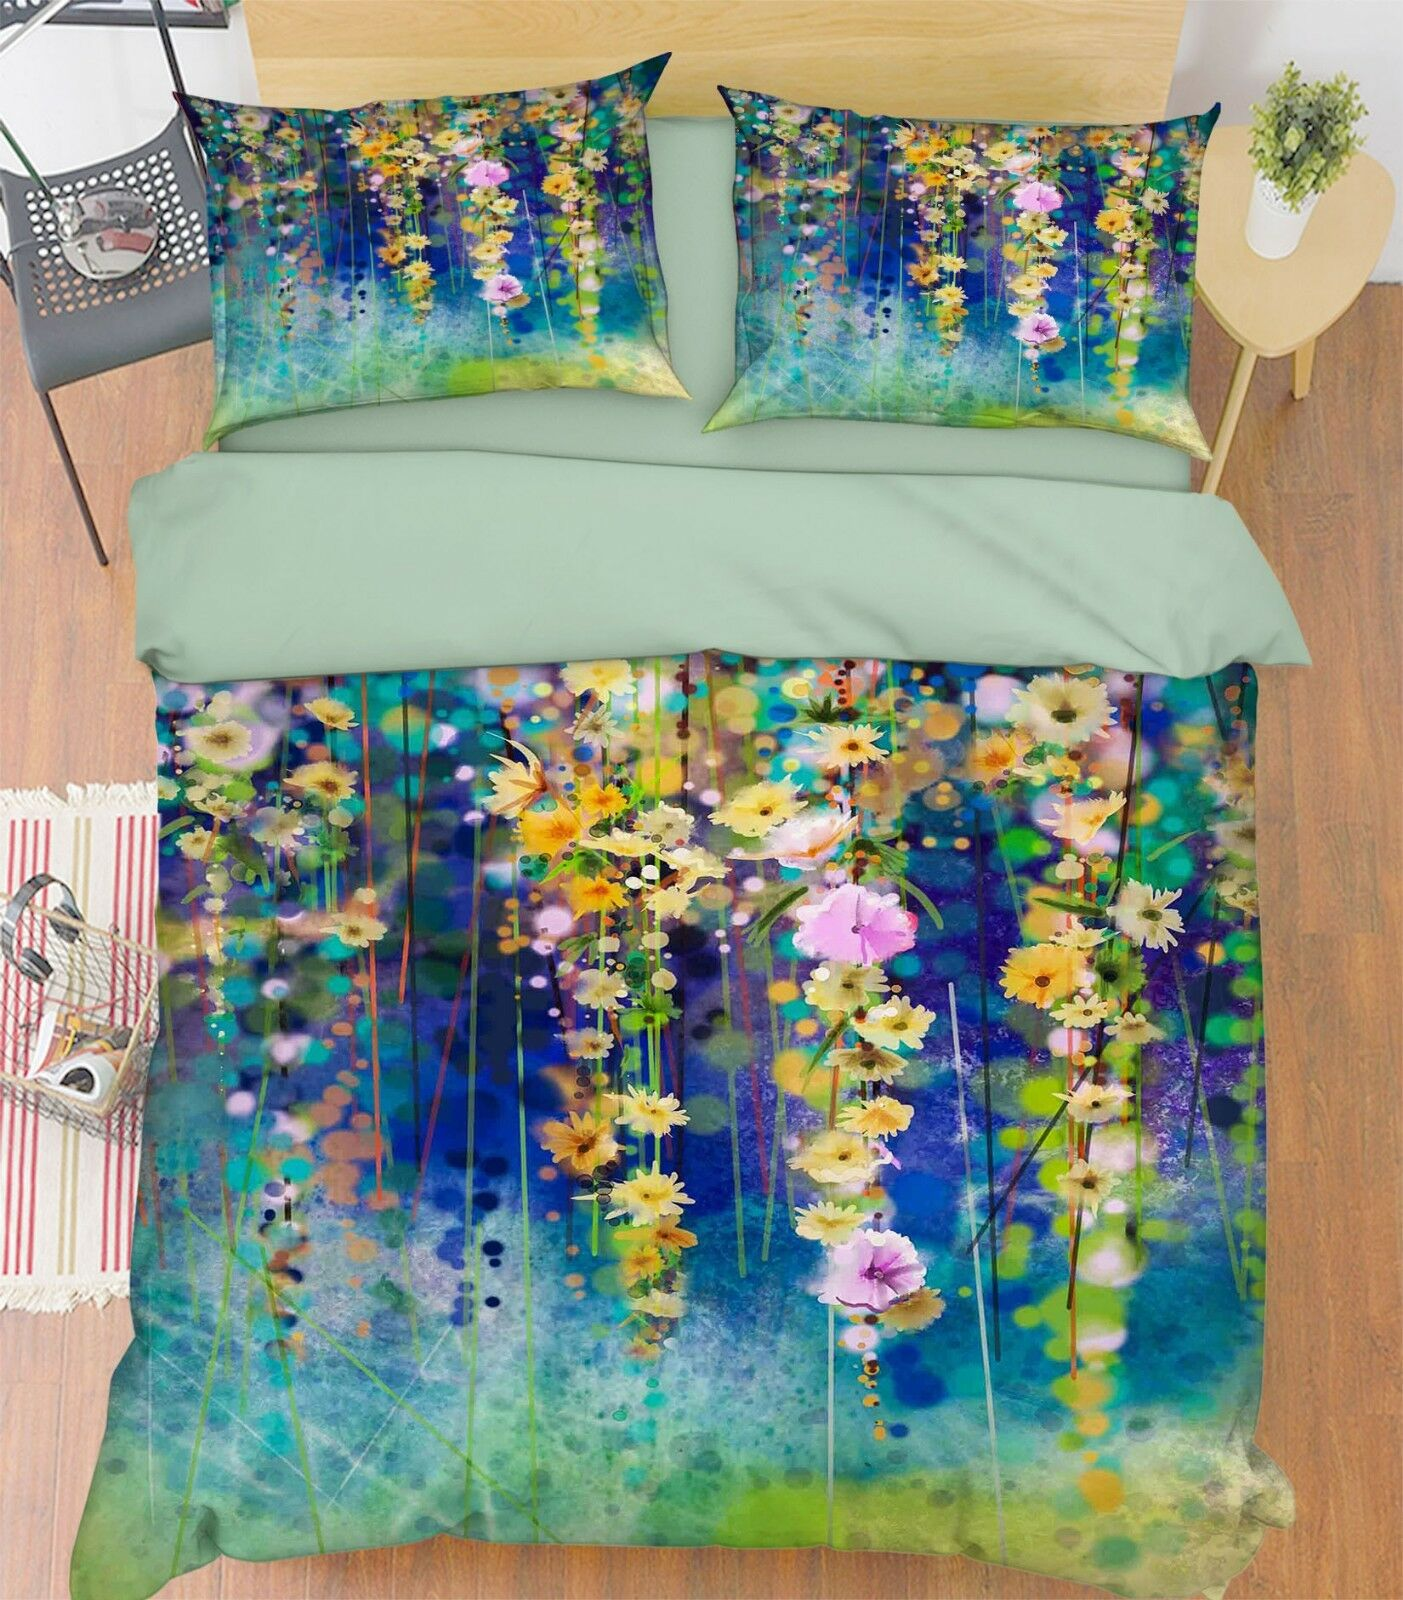 3D Oil Painting 687 Bett Pillowcases Quilt Duvet Startseite Set Single König UK Summer